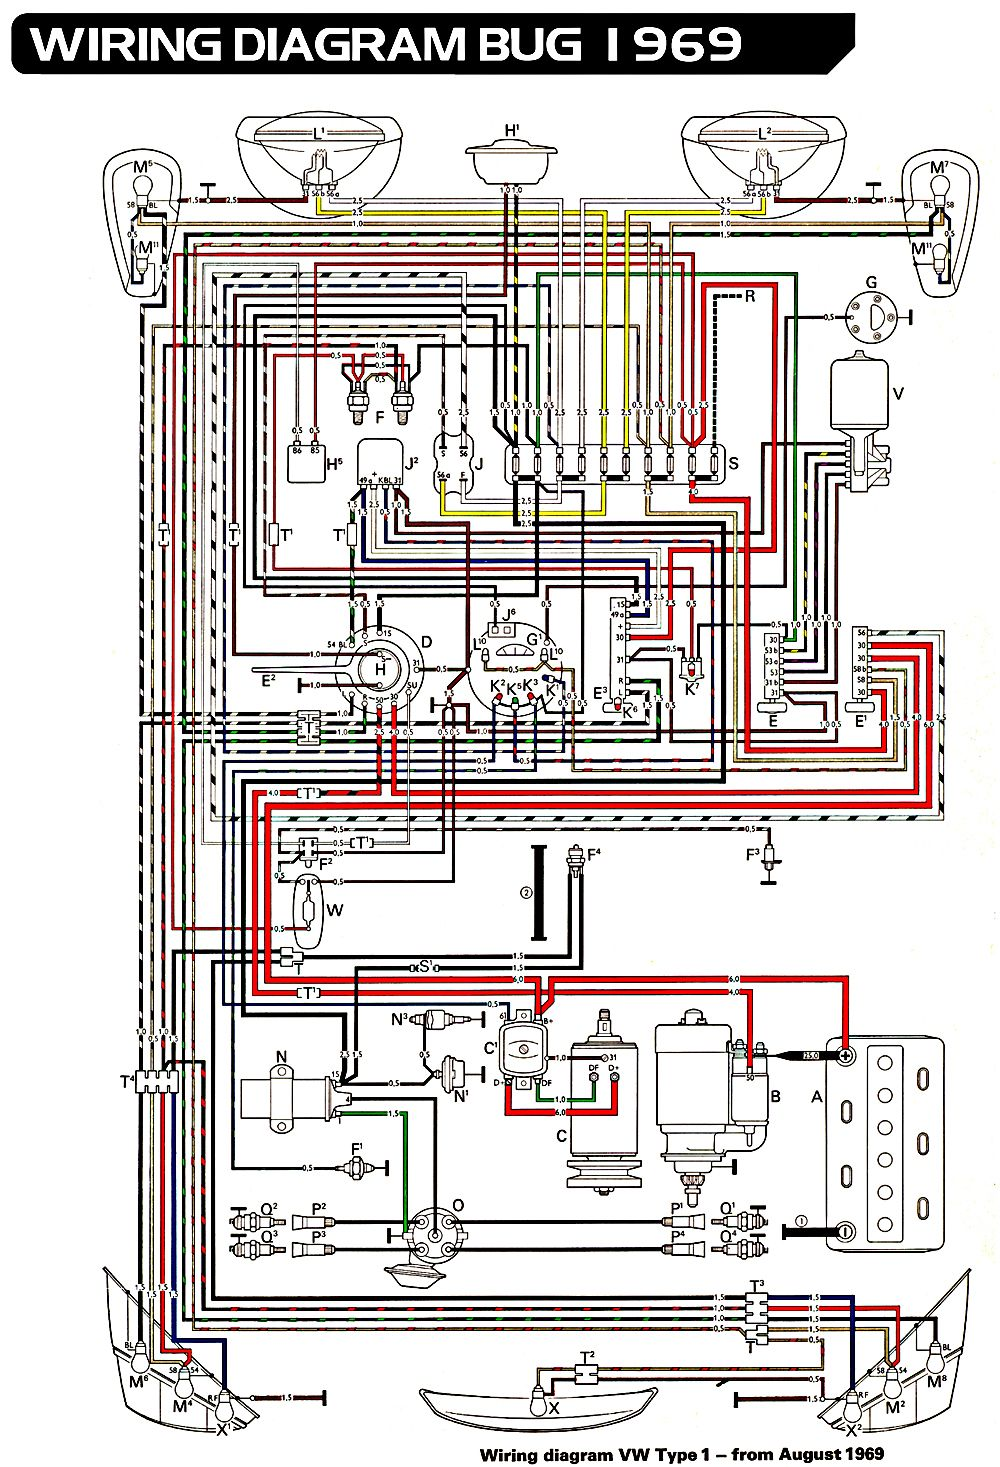 78 volkswagen beetle engine wiring diagram online wiring diagram Wiring Diagram for 1979 VW Super Beetle 69 beetle engine wiring harness diagrams 4 7 spikeballclubkoeln de \\u2022vw wiring harness diagram 1